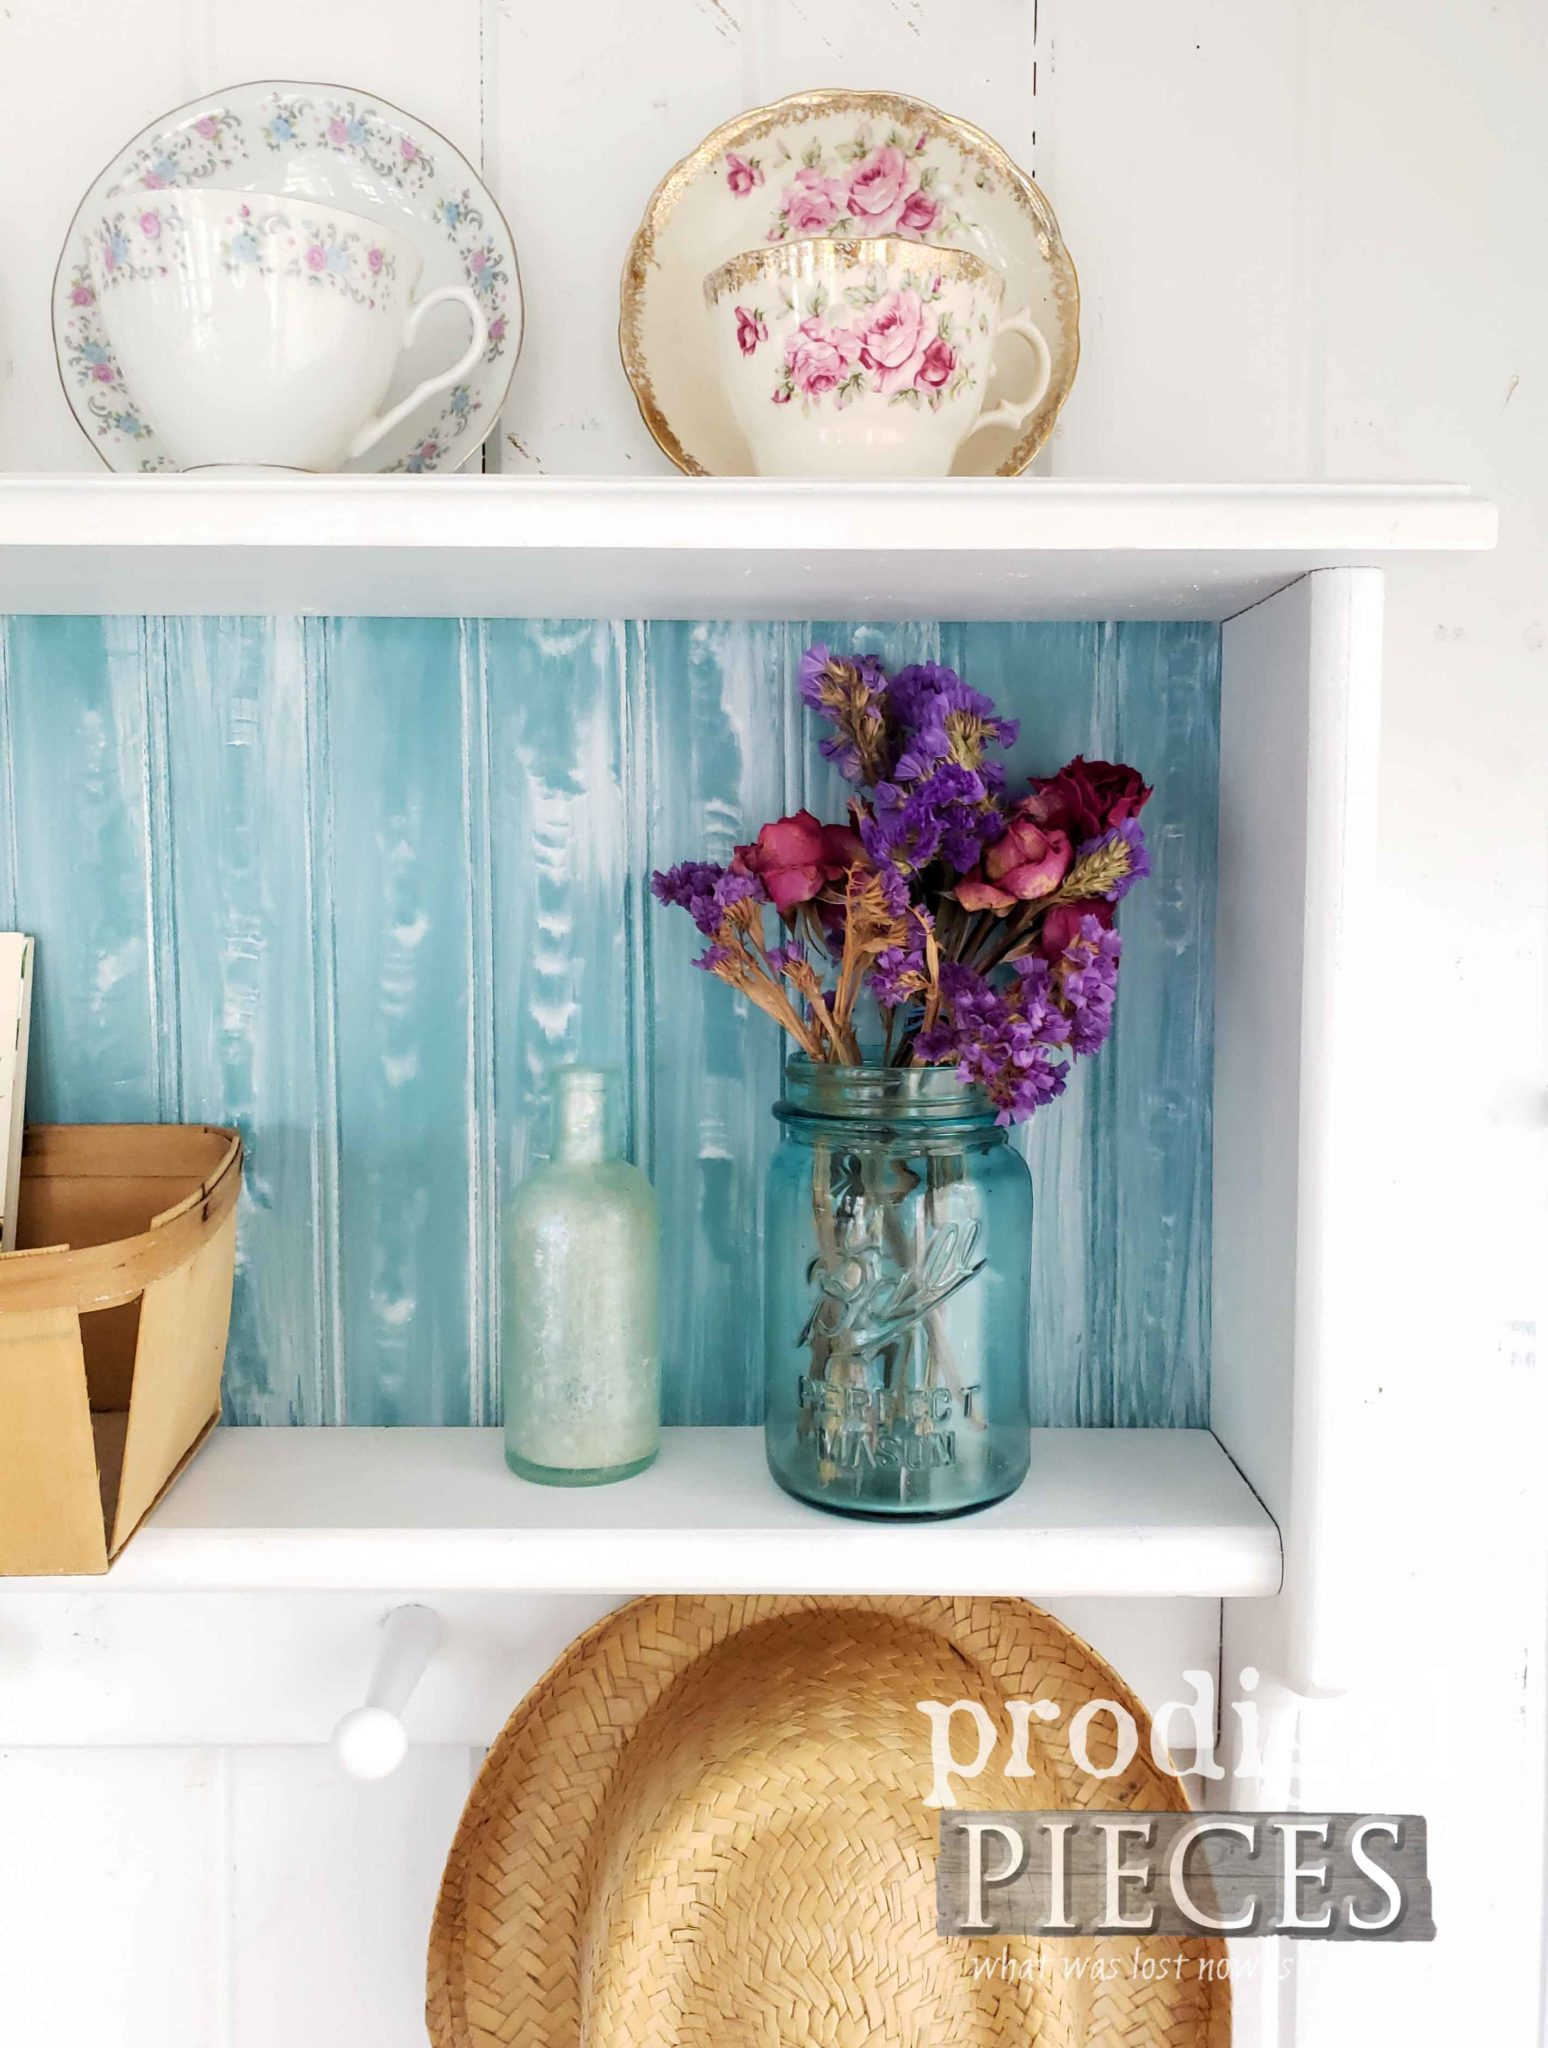 Whitewashed Aqua Wood Shelf with Faux Graining Tutorial by Larissa of Prodigal Pieces | prodigalpieces.com #prodigalpieces #diy #home #handmade #cottagestyle #homedecor